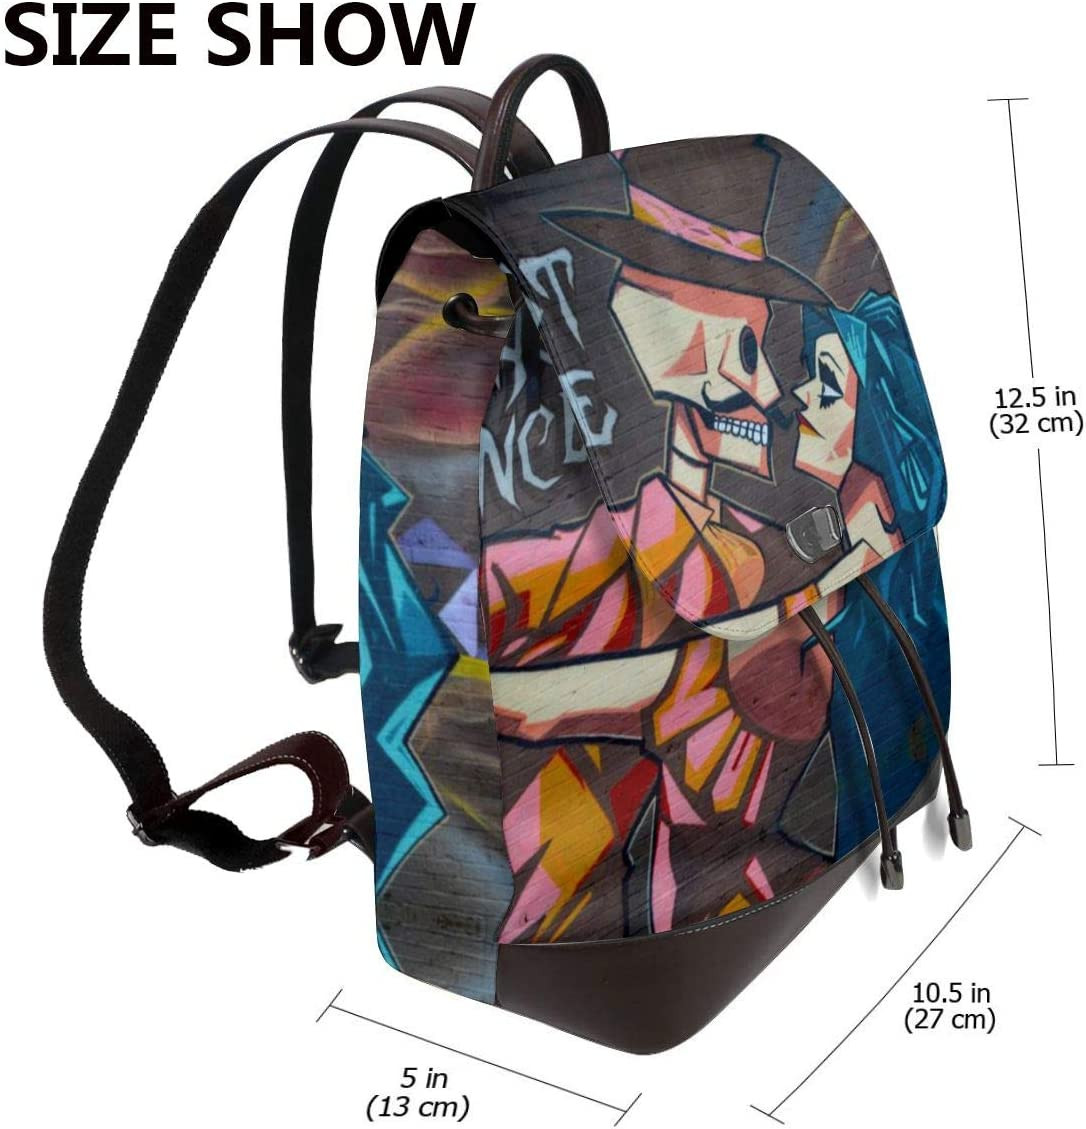 Perfect Appearance Street Art Womens Leather Backpacks Unique Design and Elegant Appearance Make It Suitable for Any Outfit